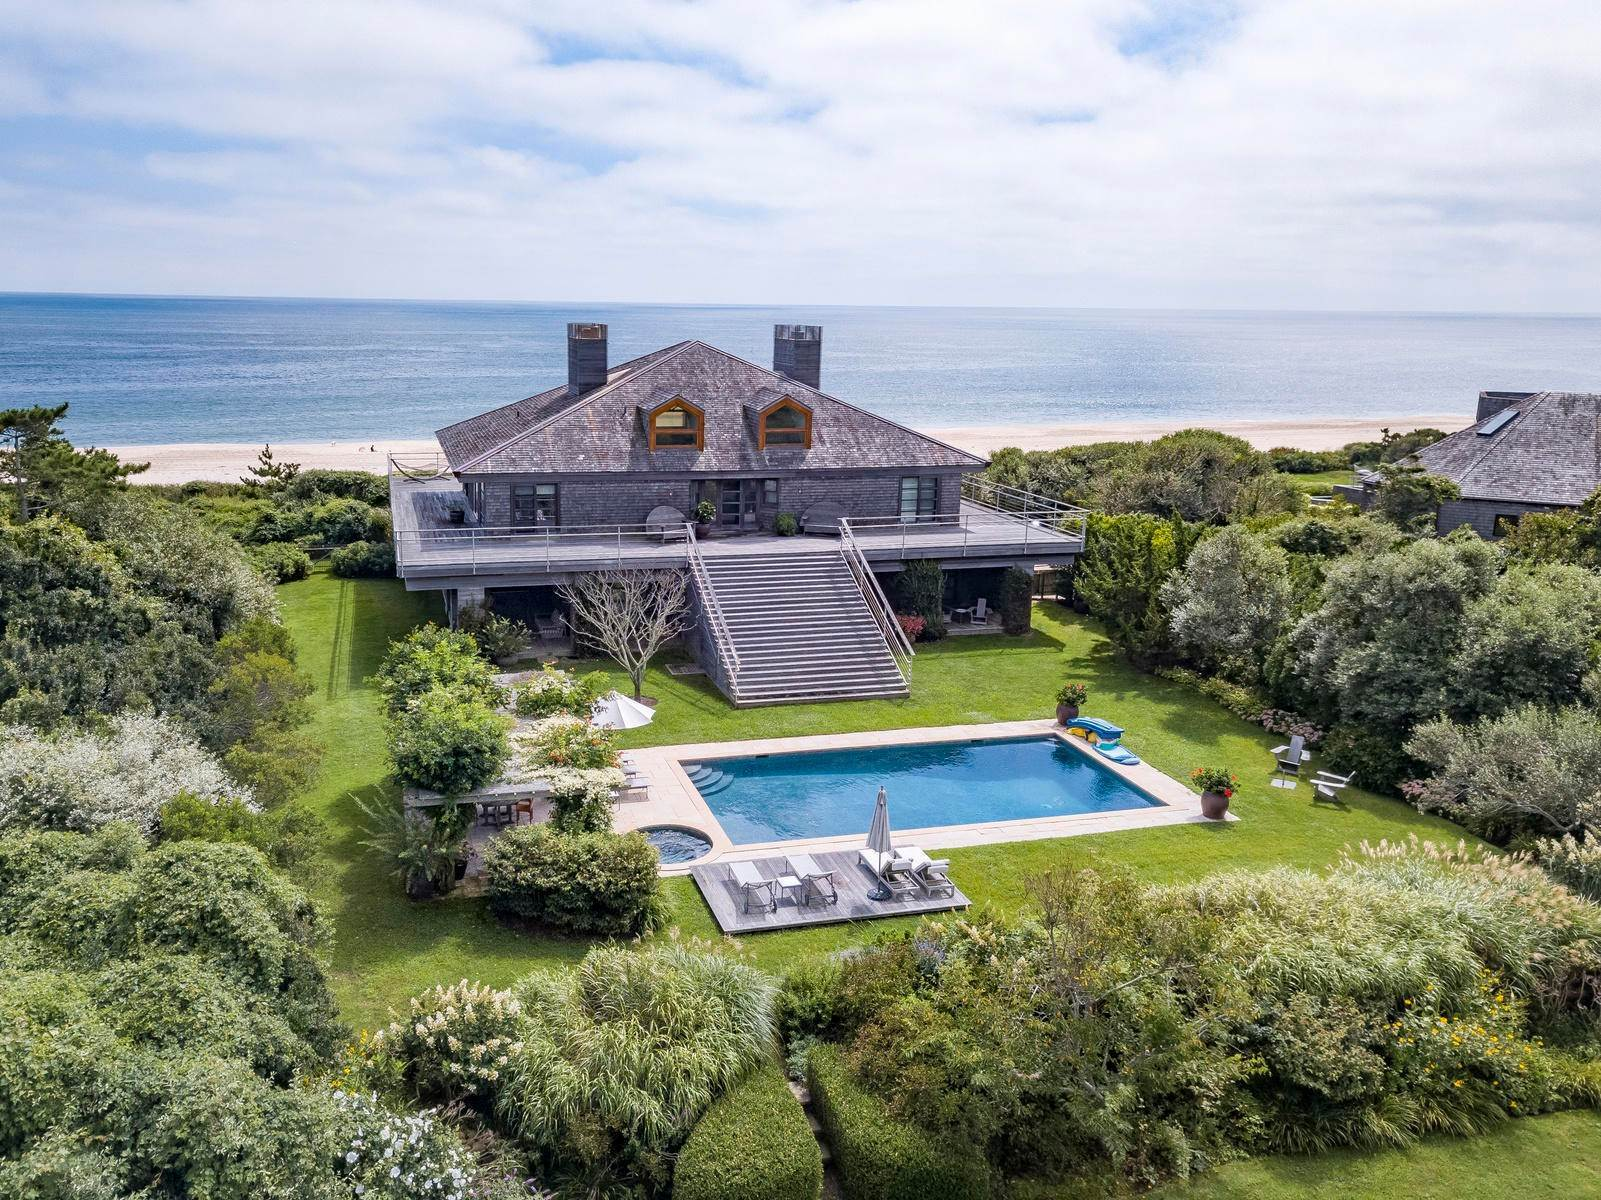 Single Family Home at Sagaponack Coveted Oceanfront Sagaponack Village, NY 11962